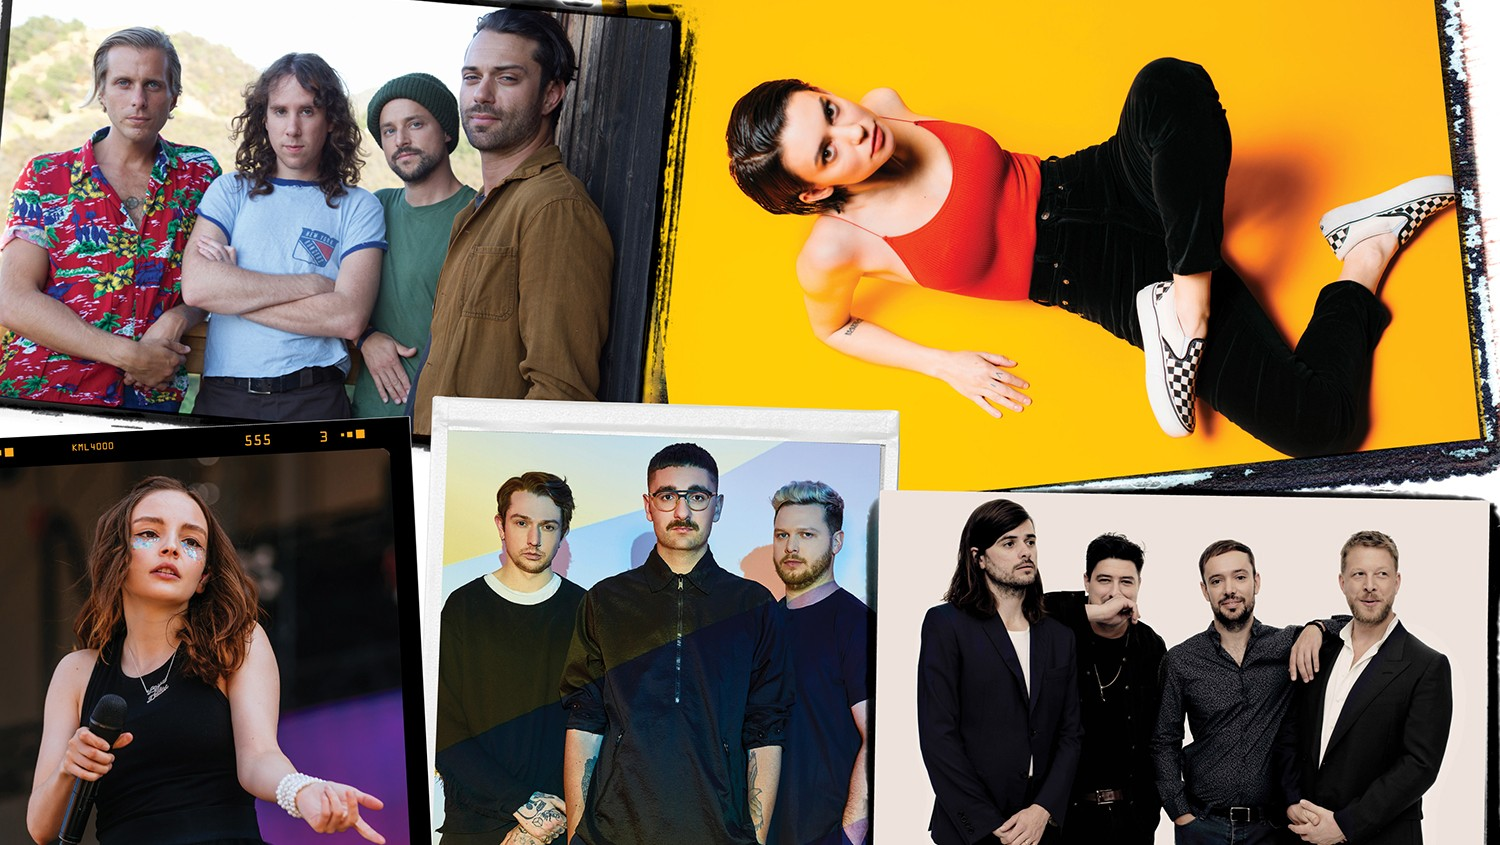 Clockwise from top left: Awolnation, Meg Myers, Mumford & Sons, Alt-J & Lauren Mayberry of Chvrches